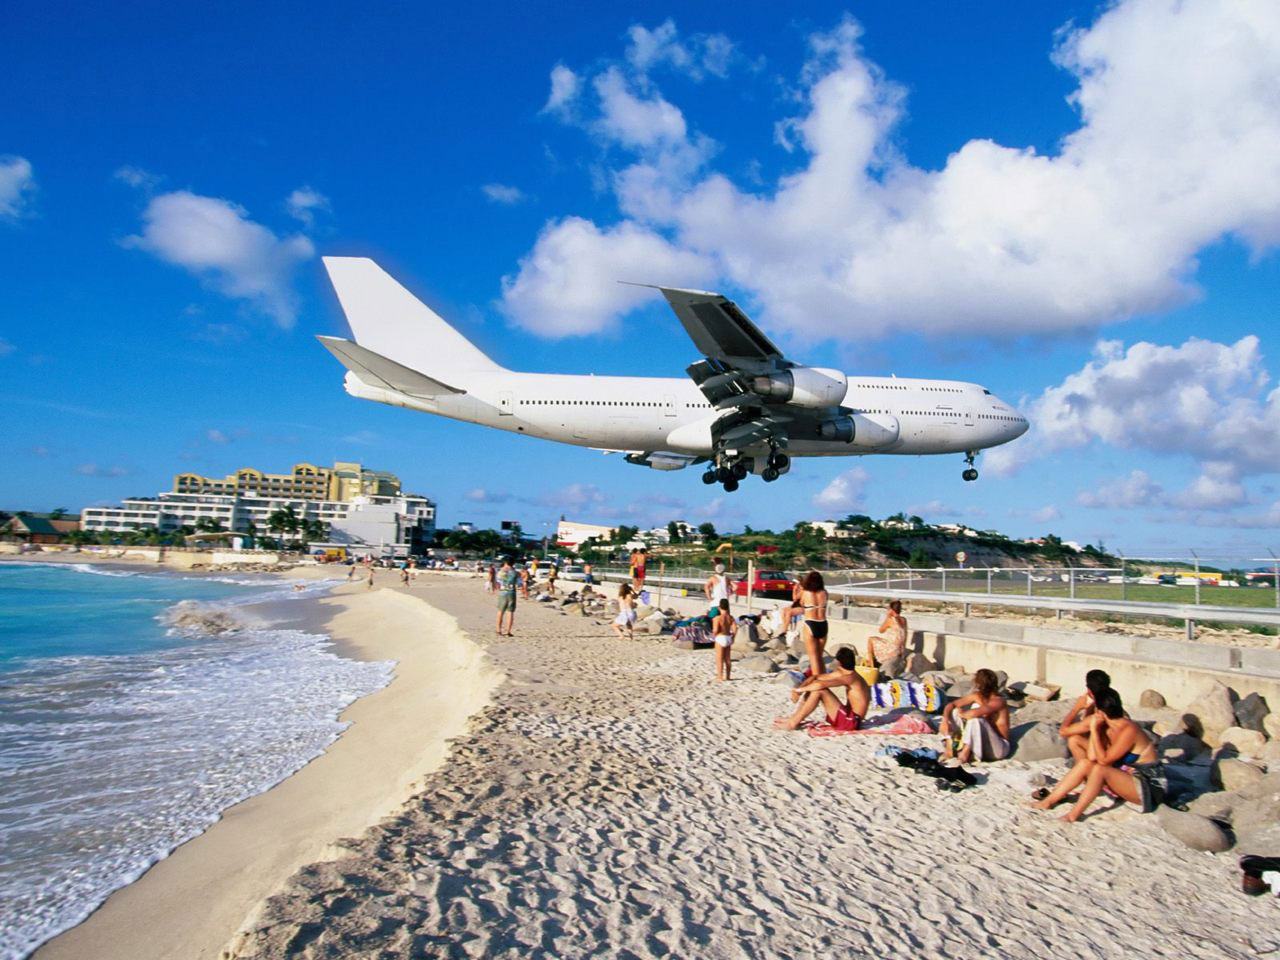 DESTINATION : Maho Beach